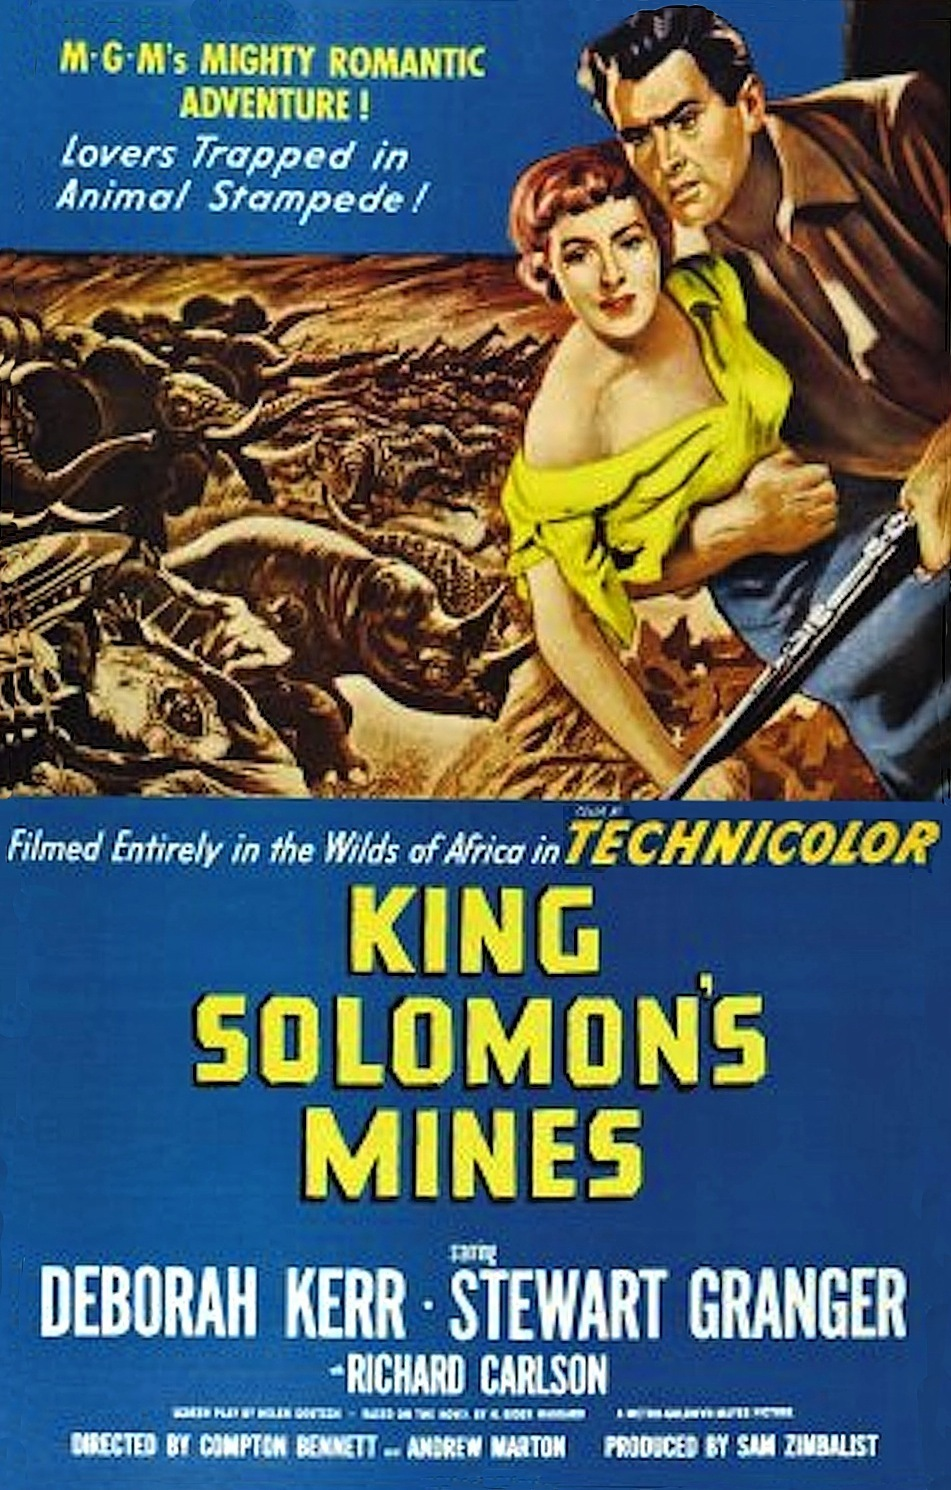 king solomons mines Manure preserved for millennia by the arid climate of israel's timna valley is adding fresh fuel to a long-simmering debate about the biblical king solomon and the source of his legendary wealth archaeologists discovered the 3,000-year-old dung in an ancient mining camp atop a sandstone mesa.